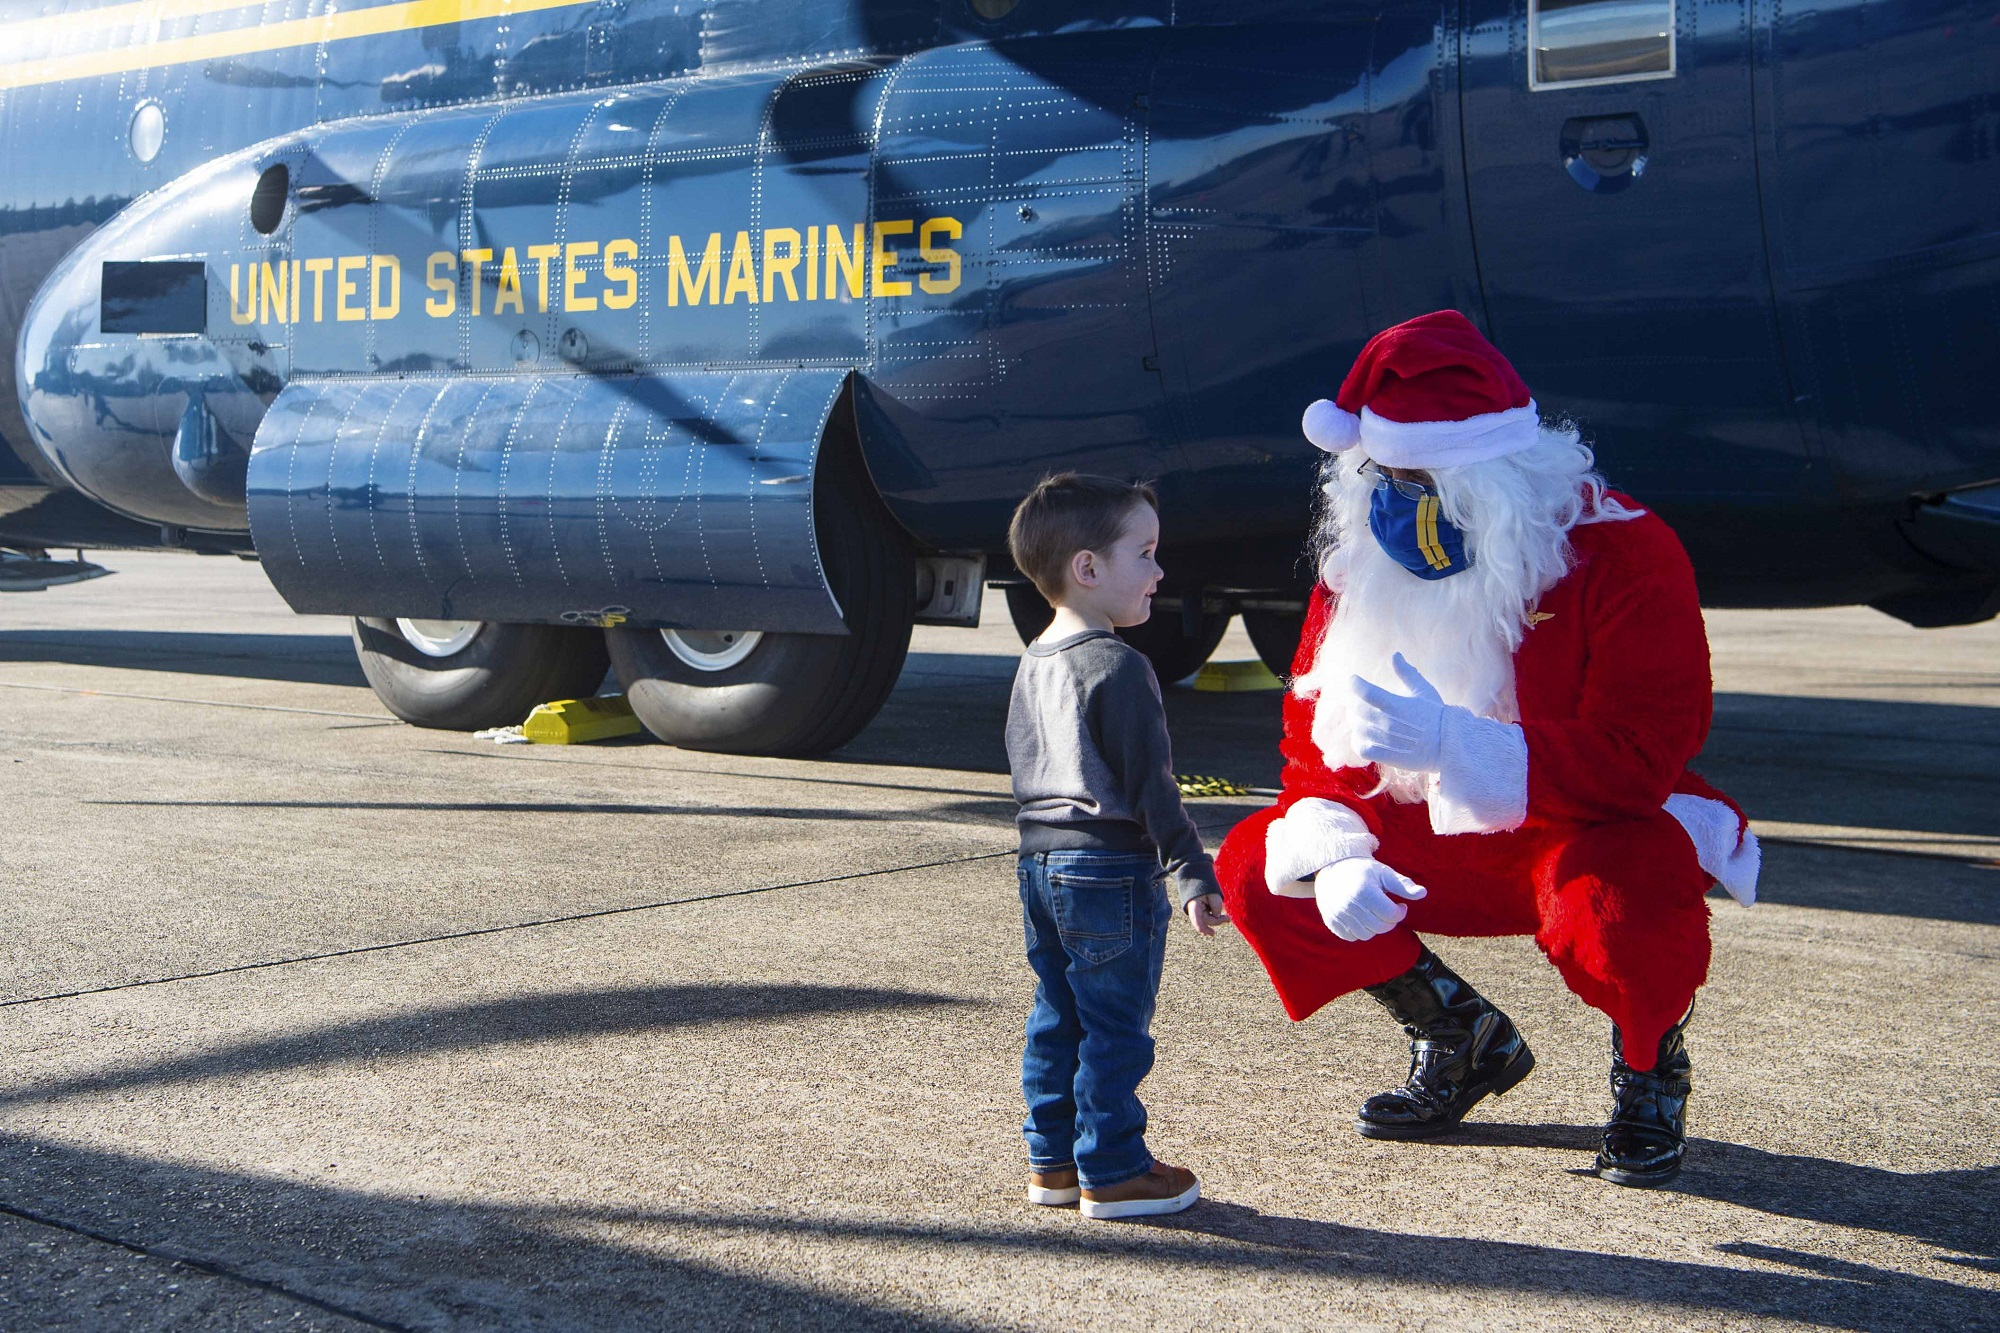 Santa speaks with a child while joining the Blue Angels, the Navy's flight demonstration squadron, to support the Marine Corps Toys for Tots program by delivering toys and games to families impacted by the COVID-19 pandemic and multiple hurricanes in Lake Charles, La., Dec. 8, 2020. (MC2 Cody Hendrix/Navy)